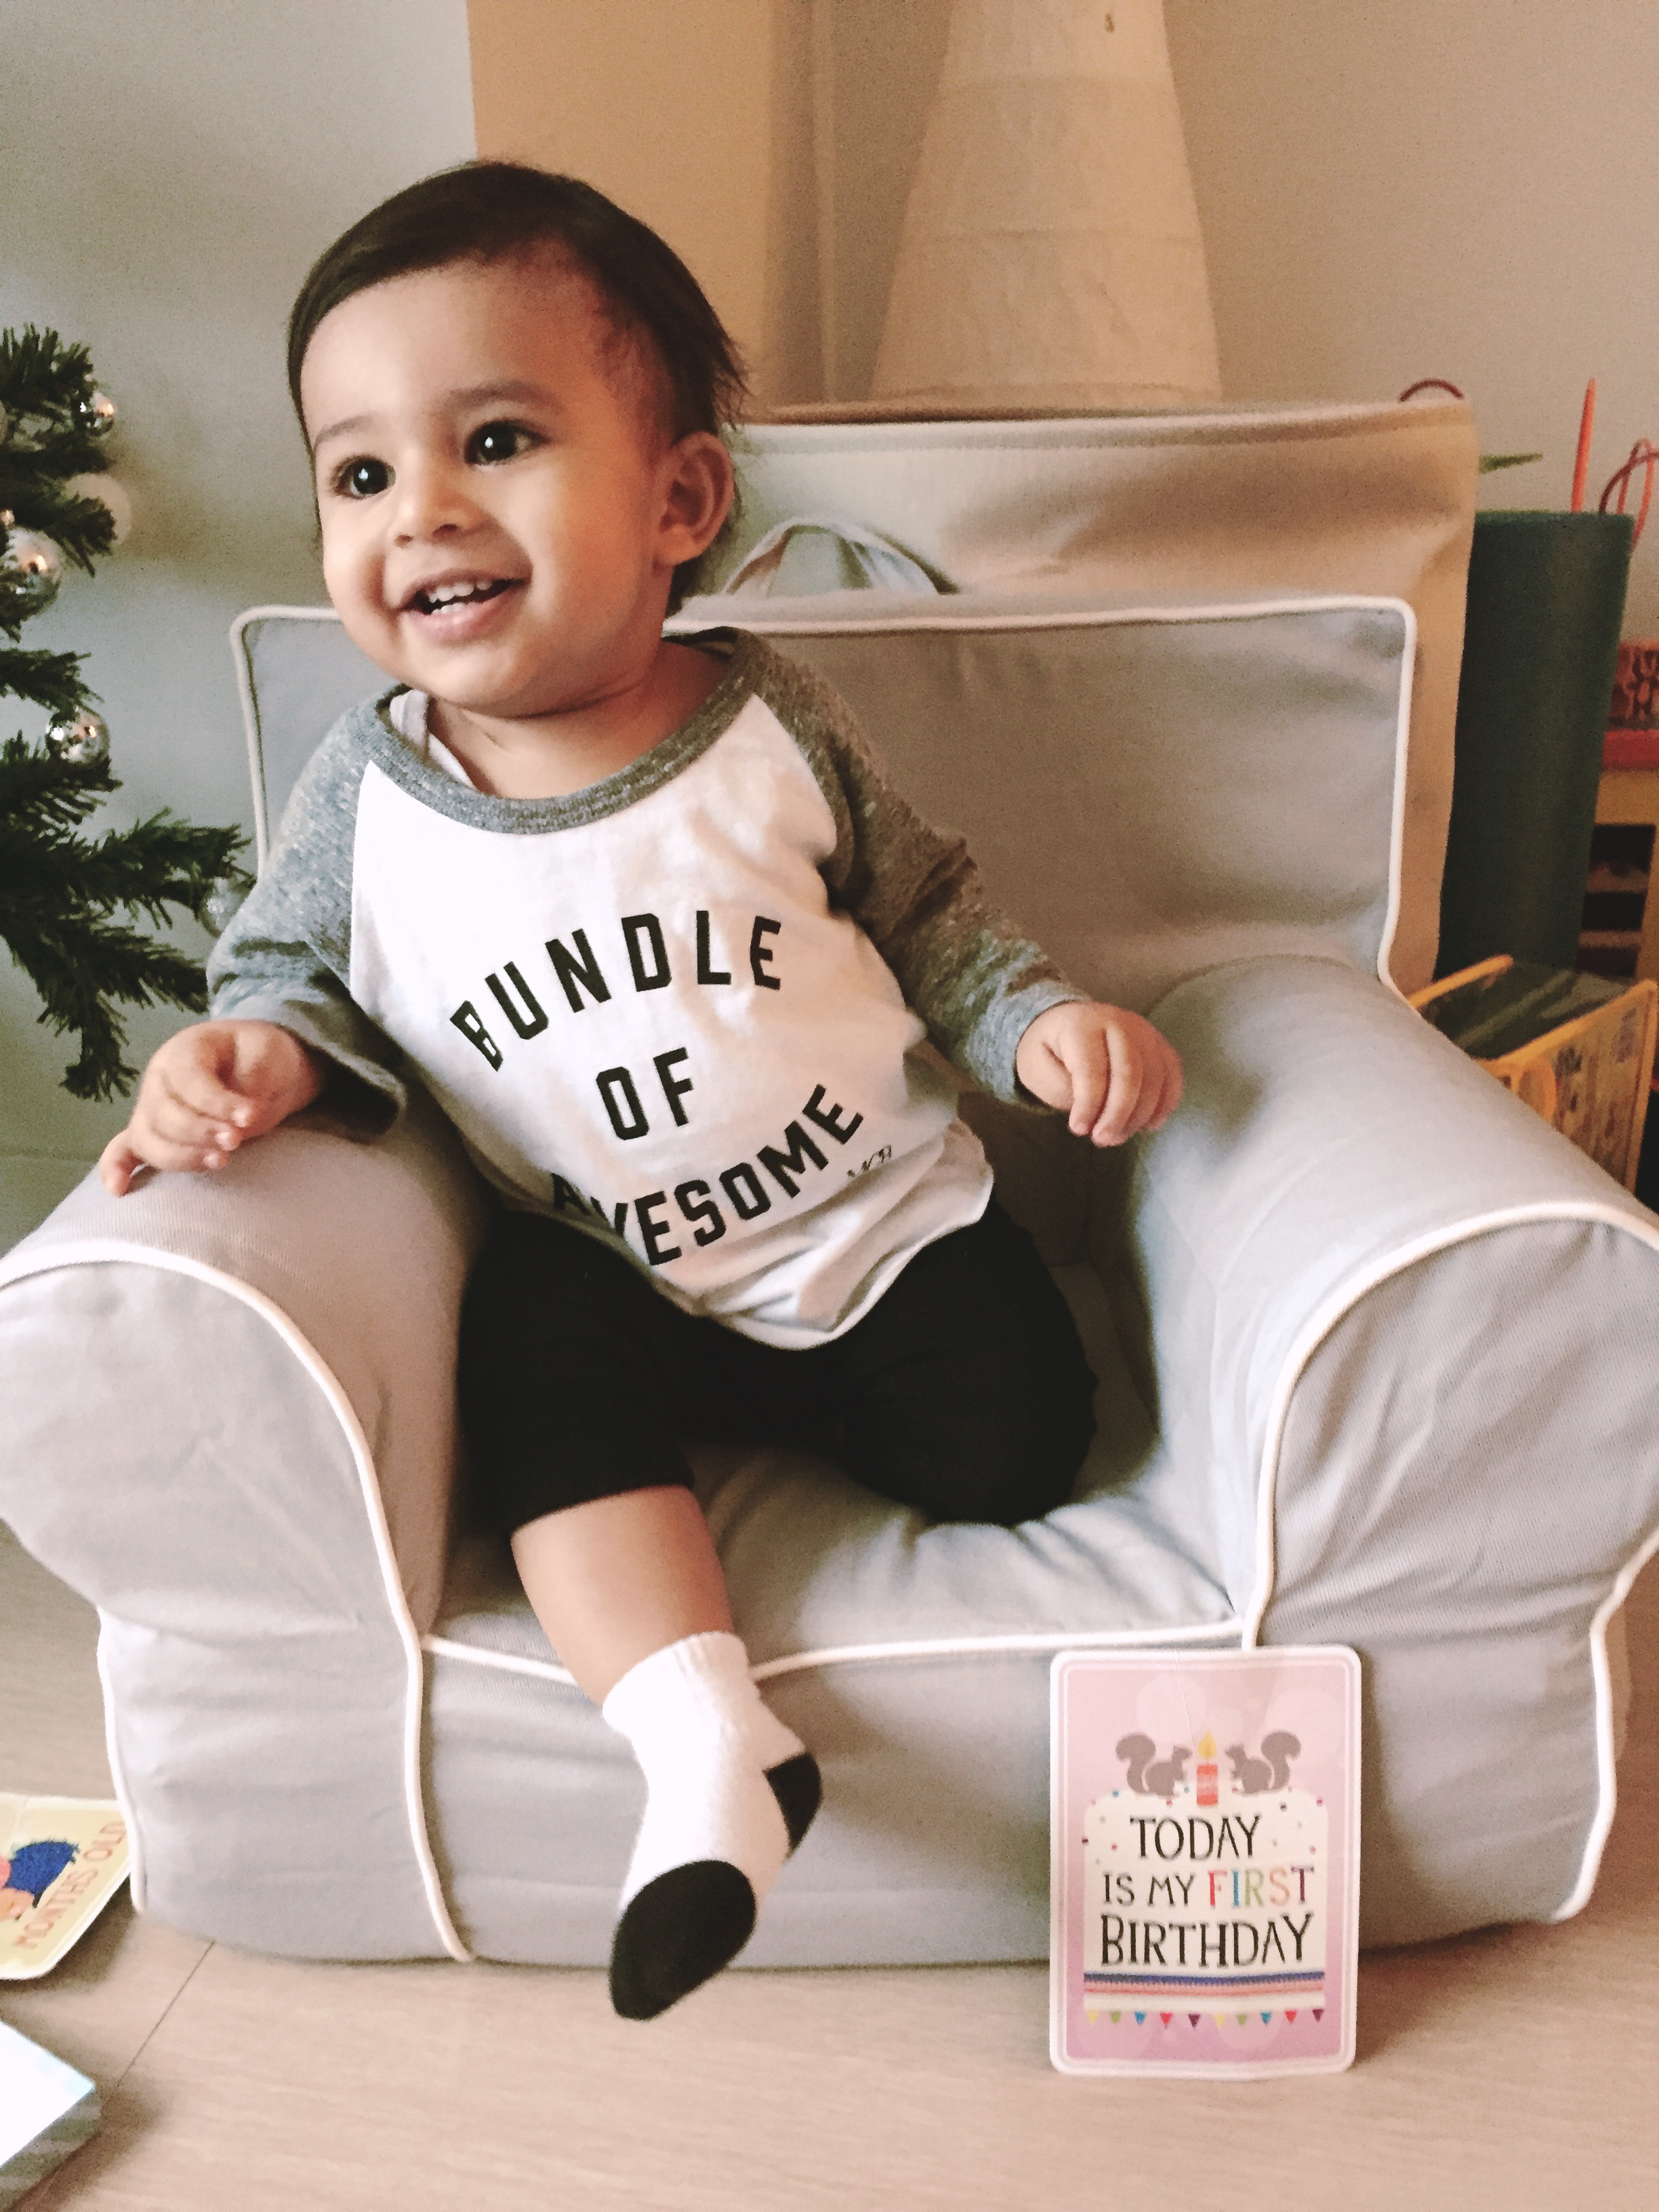 My Cheeky Baby - Two words to describe this brand, trendy and fabulous!  Located in Vancouver, BC, My Cheeky Baby's line of apparel is so fun and stylish.  I have a couple pieces from their line and my absolute favorite is a basic heather grey tee with powerful words that I raise my boy by,